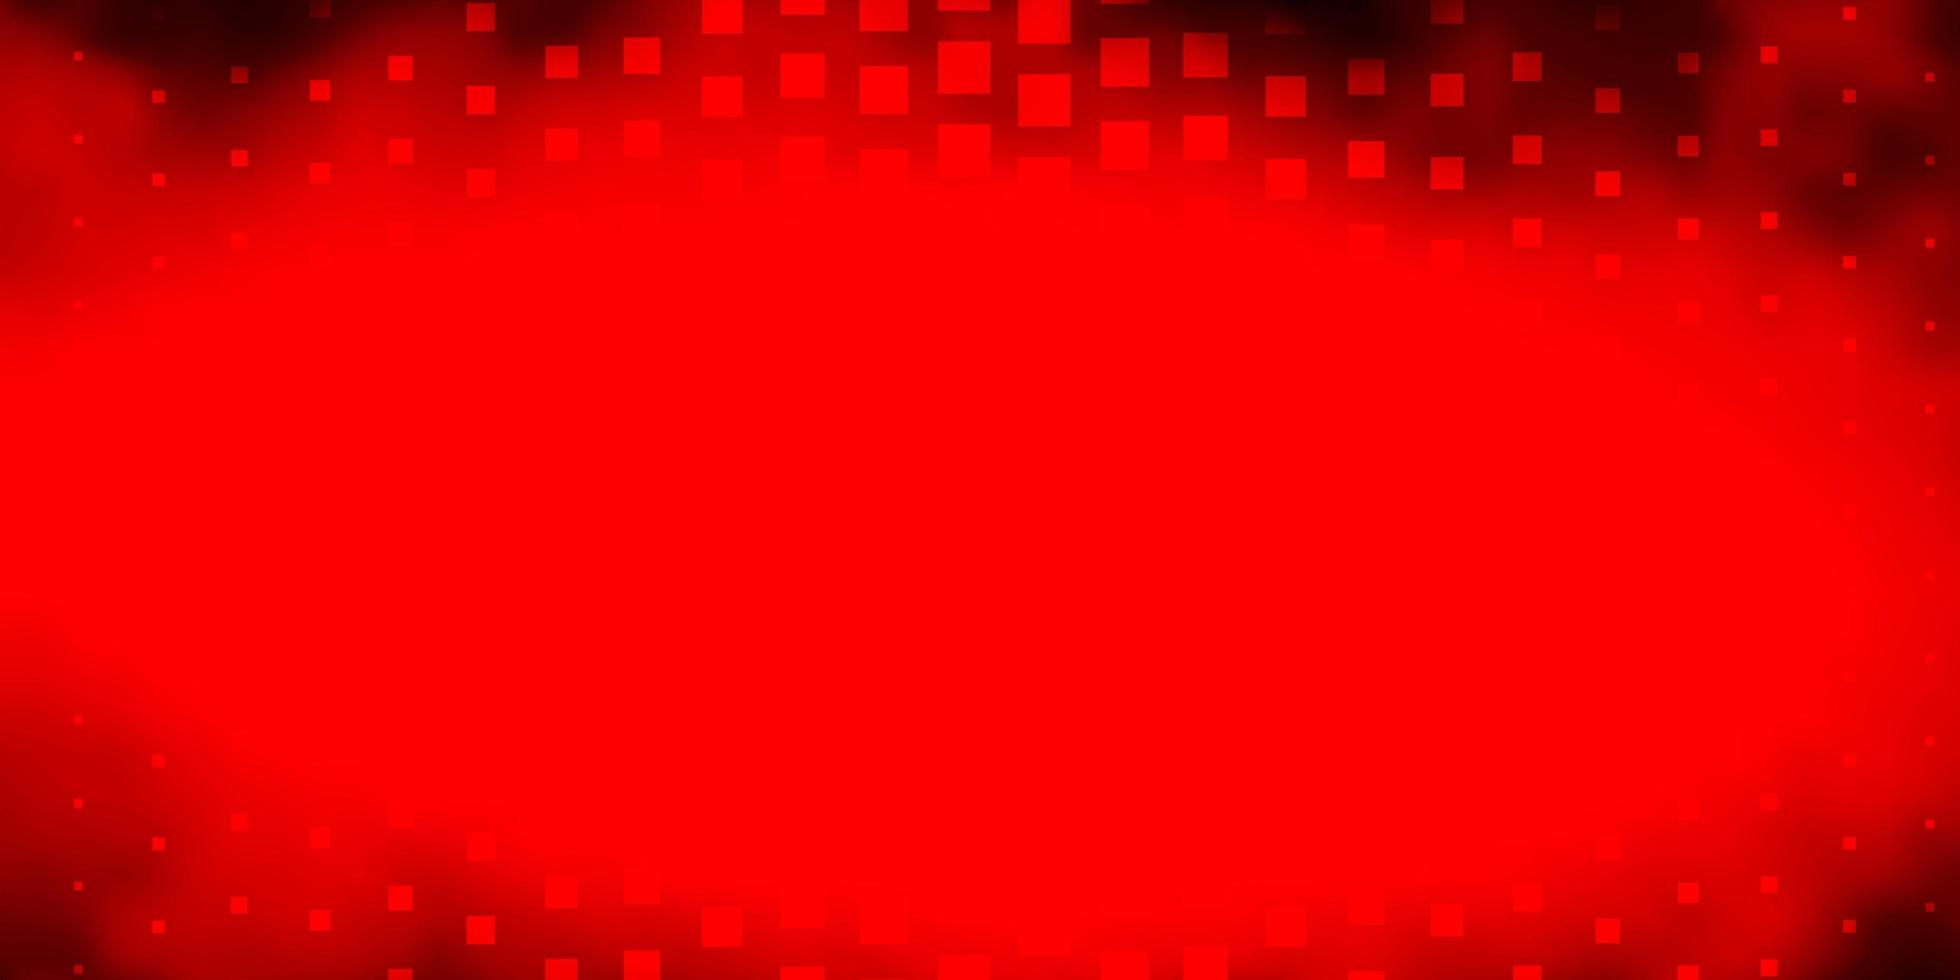 Dark Red vector backdrop with rectangles.